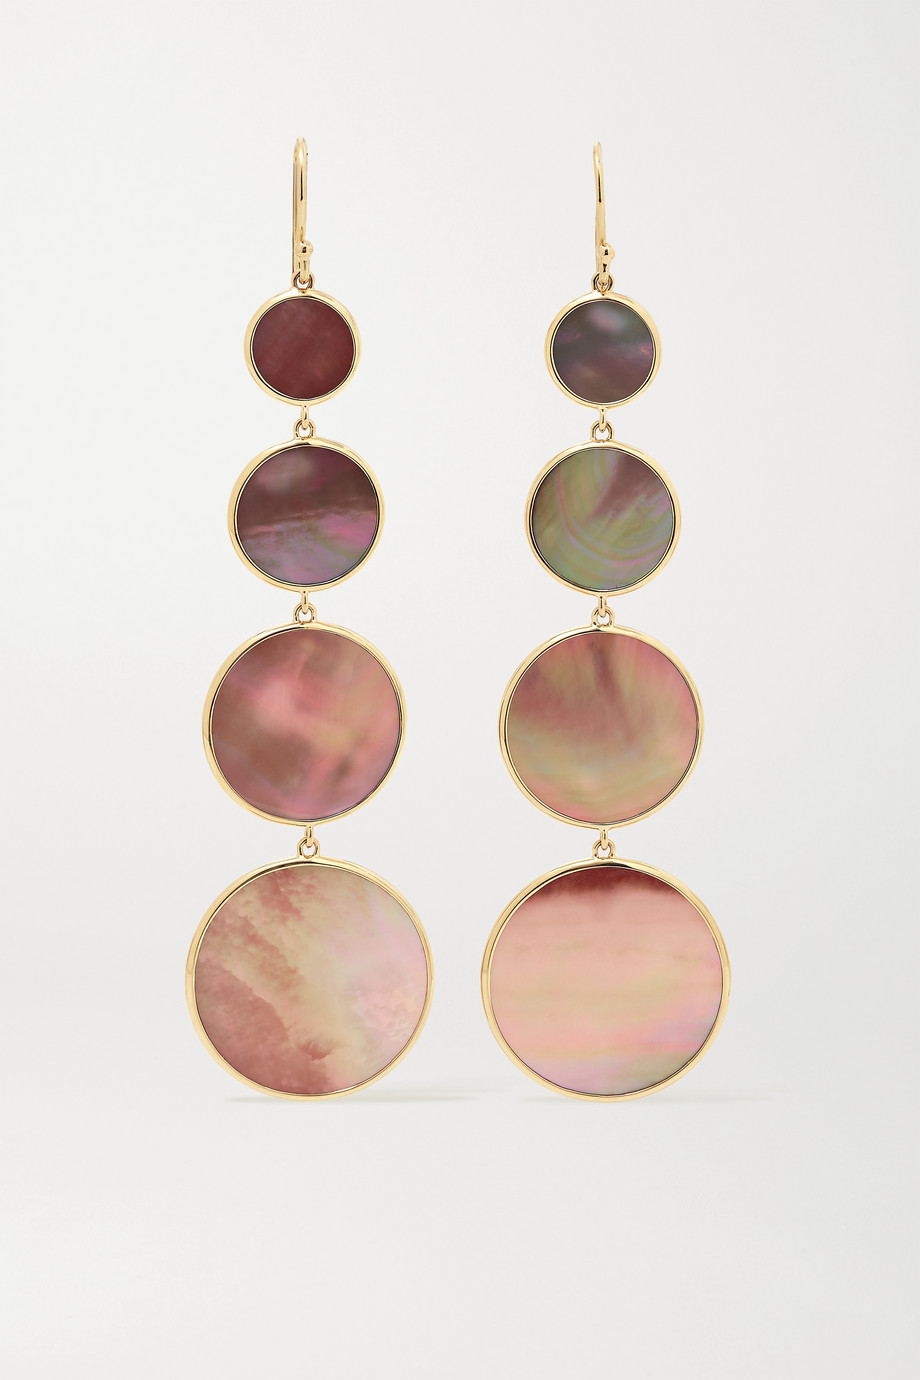 Ippolita Polished Rock Candy® Ohrringe aus 18 Karat Gold mit Muscheln